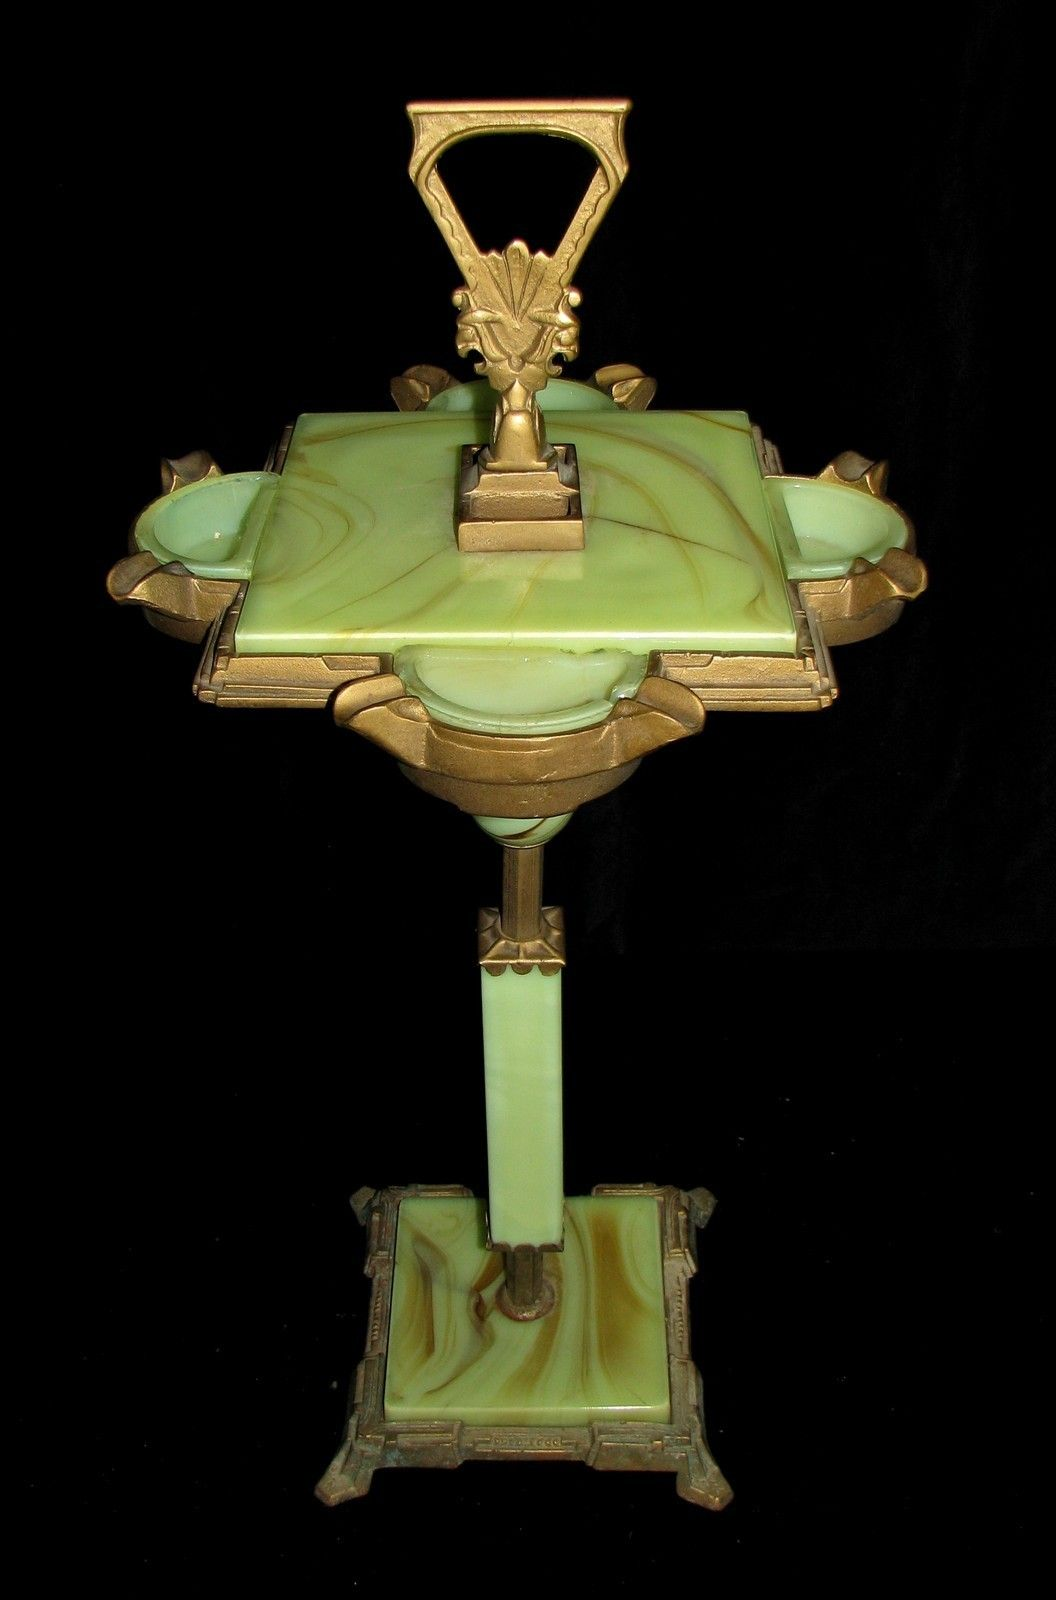 1930s Art Deco Green Onyx Cast Iron Smoking Stand Art